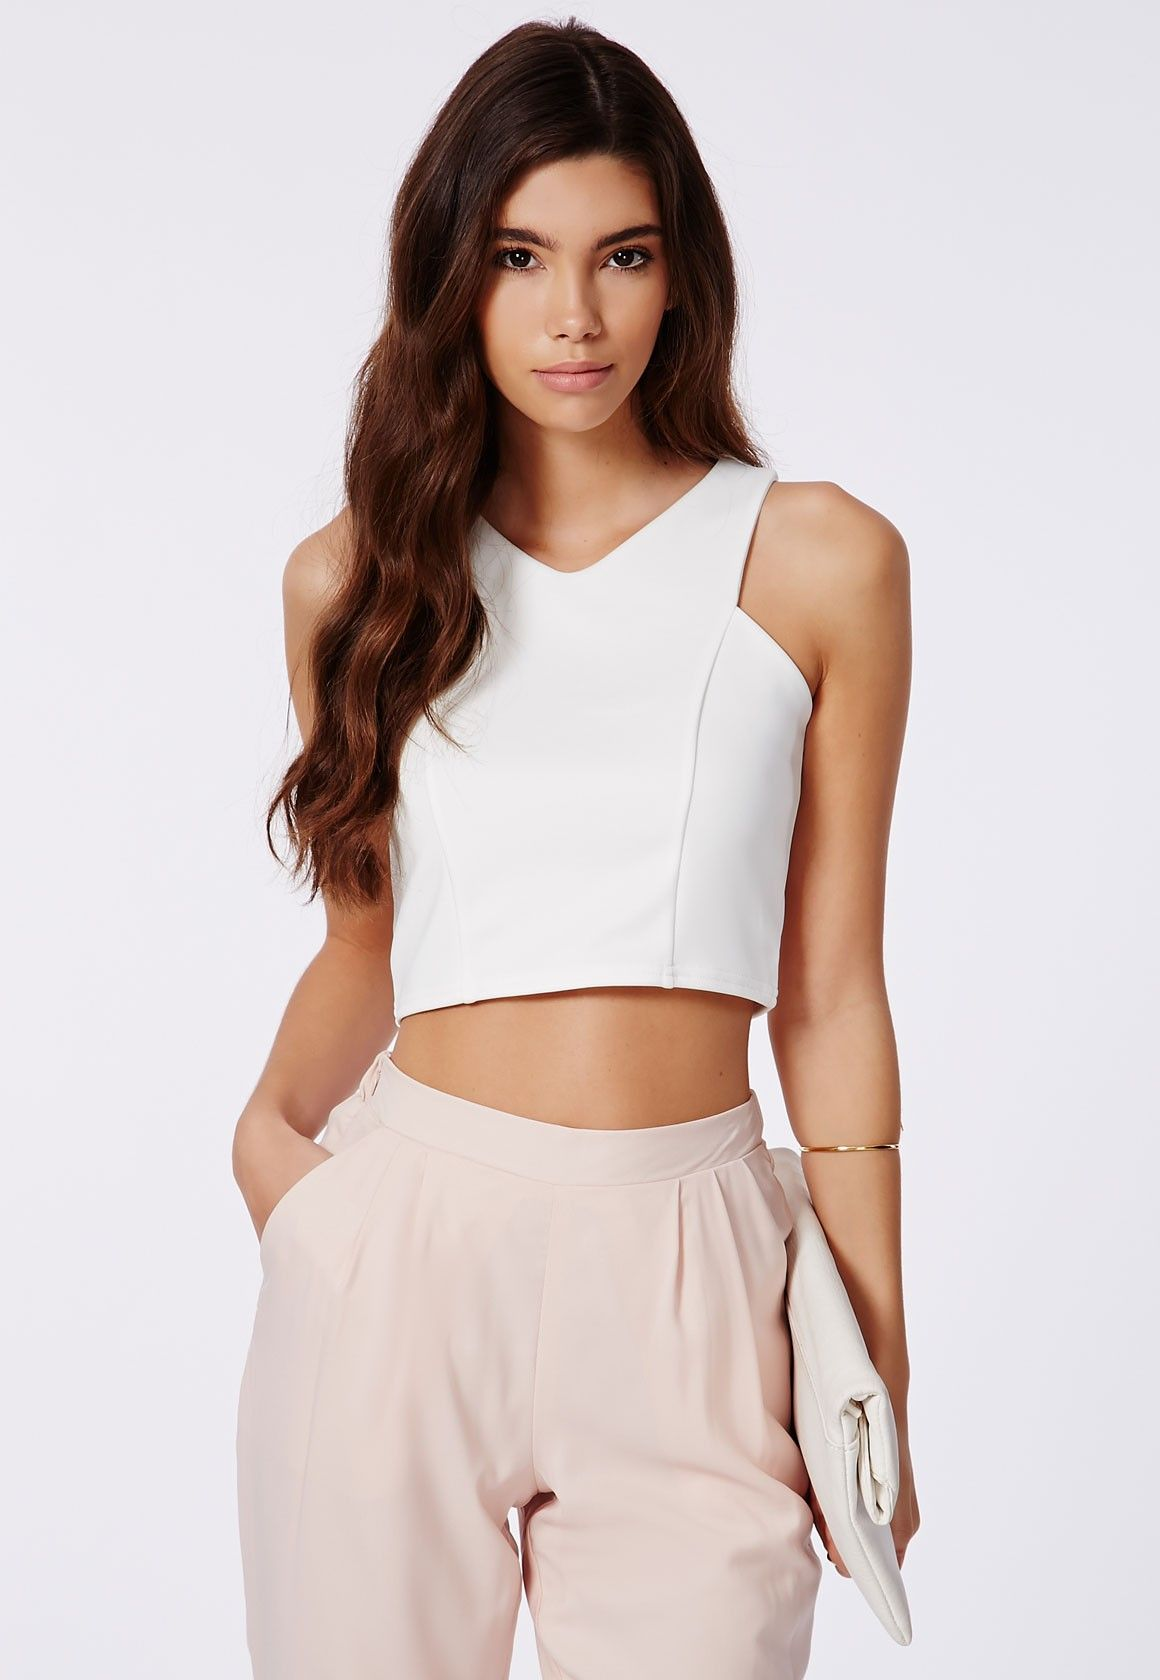 ffa5147a1c semi formal crop tops | inspirational outfits in 2019 | Formal crop ...